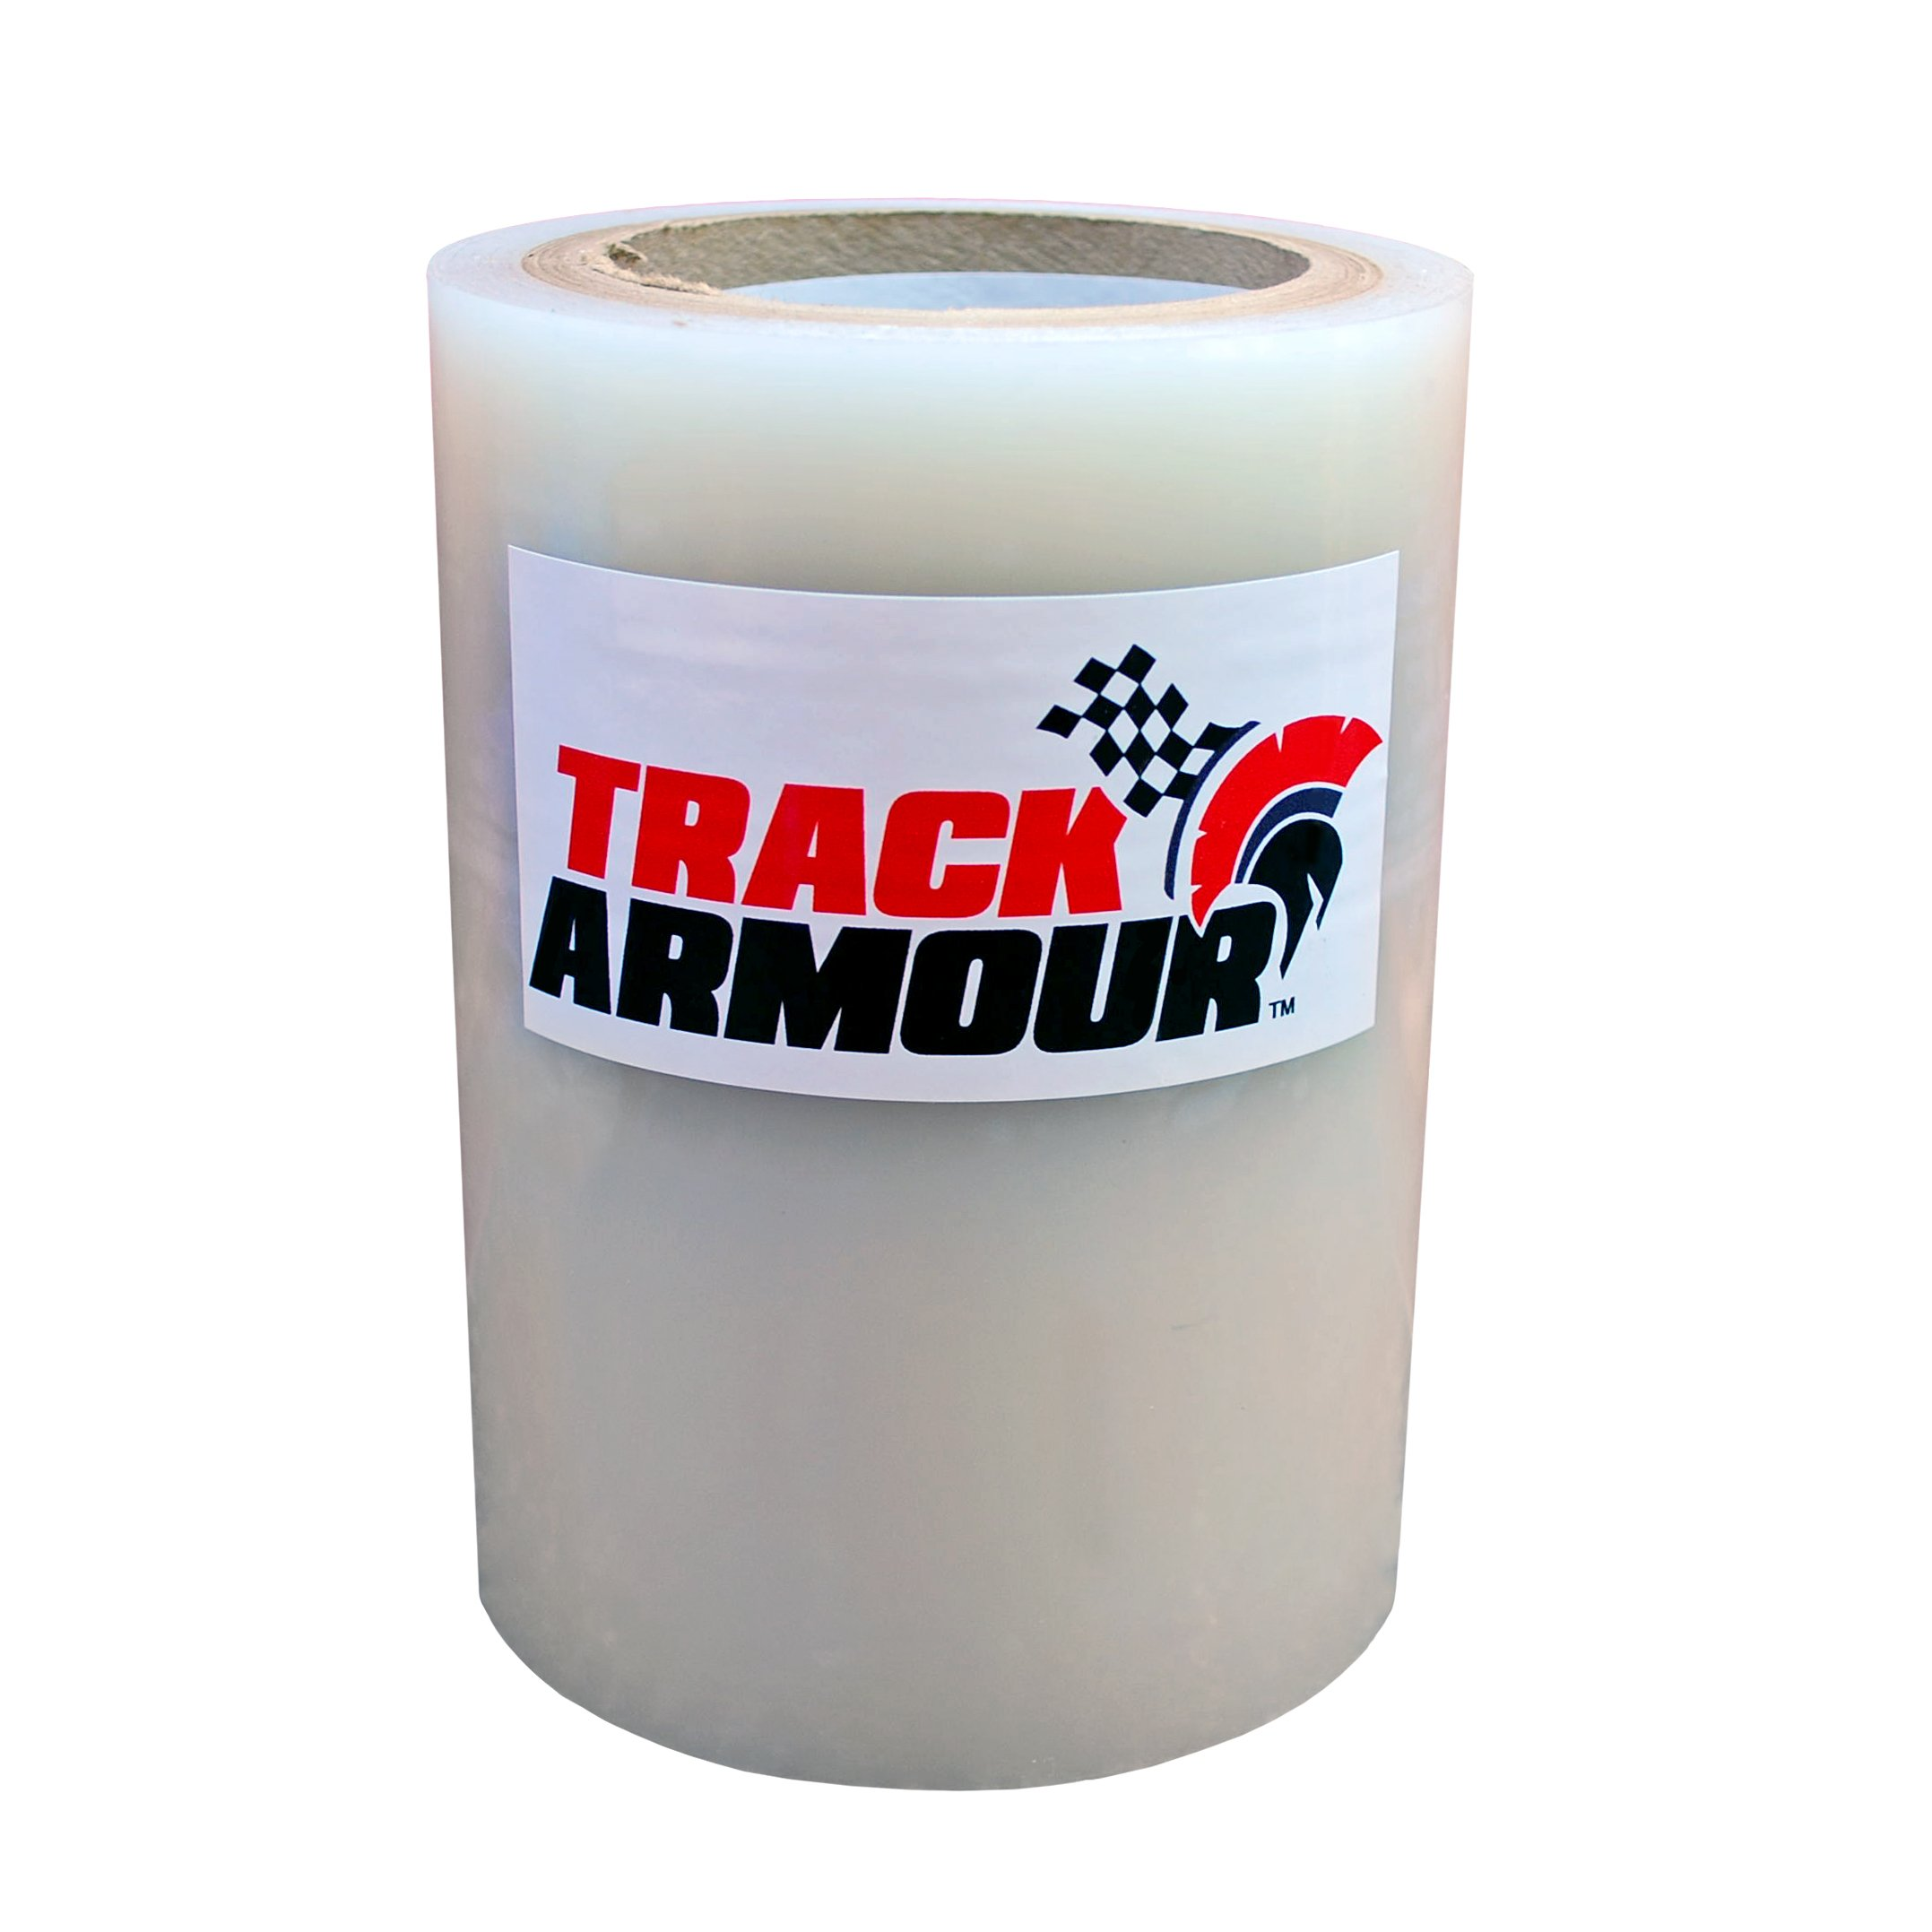 TrackArmour TA6X100-6'' x 100' - Temporary Track Day Paint Protection Clear Adhesive Film for Car